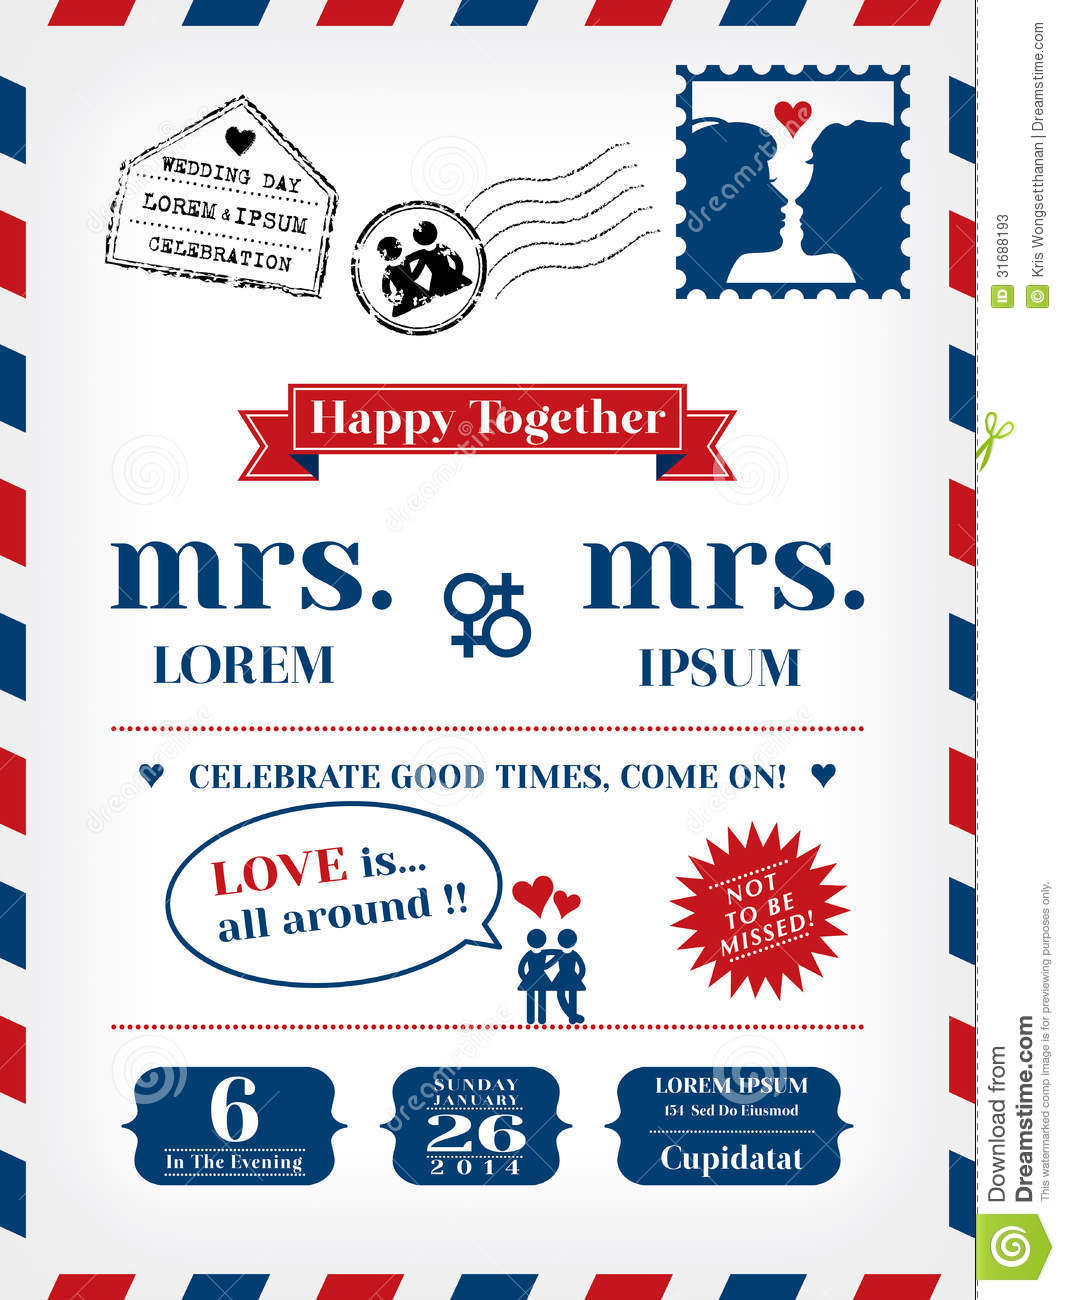 Lesbian Wedding Invitation Template in Postcard and Air mail style.